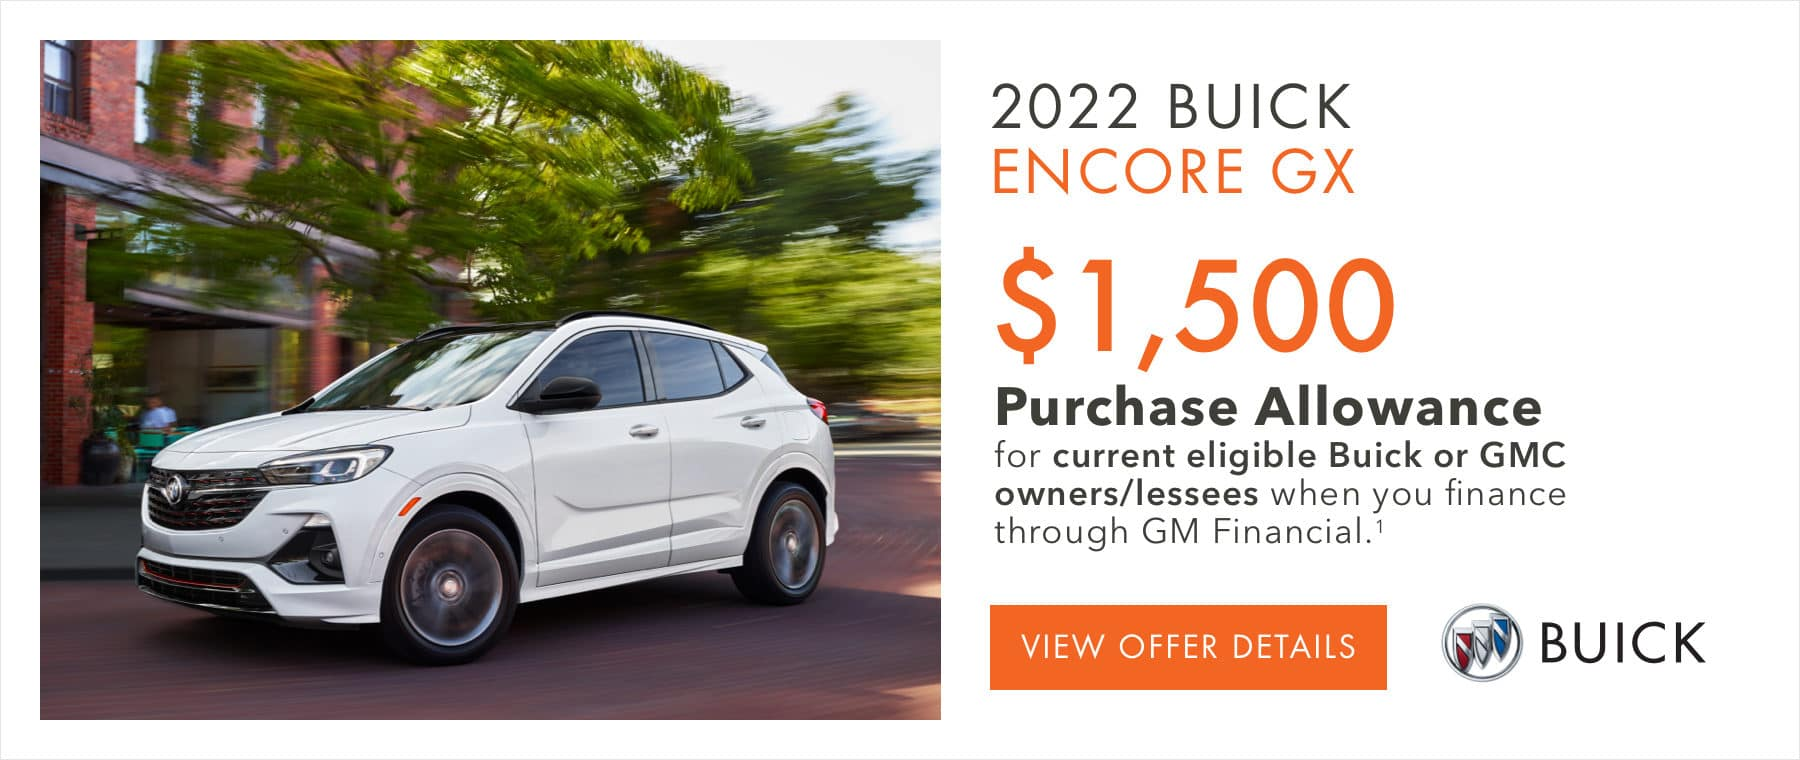 Up to $1,500 purchase allowance for current eligible Buick or GMC owner/lessees when you finance through GM Financial